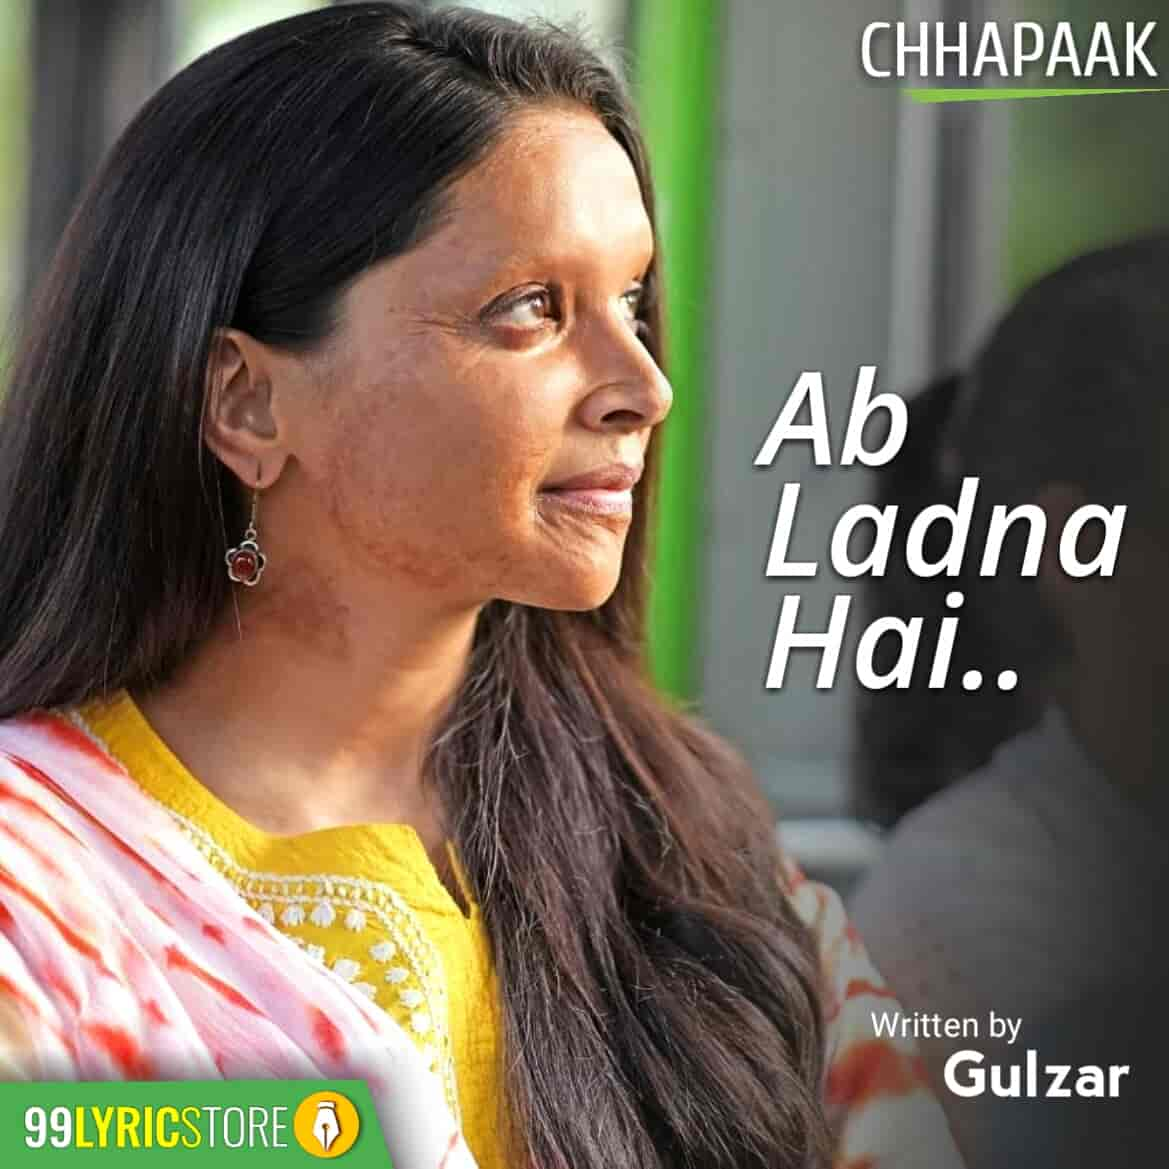 Presenting the poem Ab Ladna Hai from Deepika Padunkon starrer movie Chhapaak. This poem is penned by Gulzar Saab. This is a inspiring poem performed by Deepika Padunkon and Vikrant Massey.